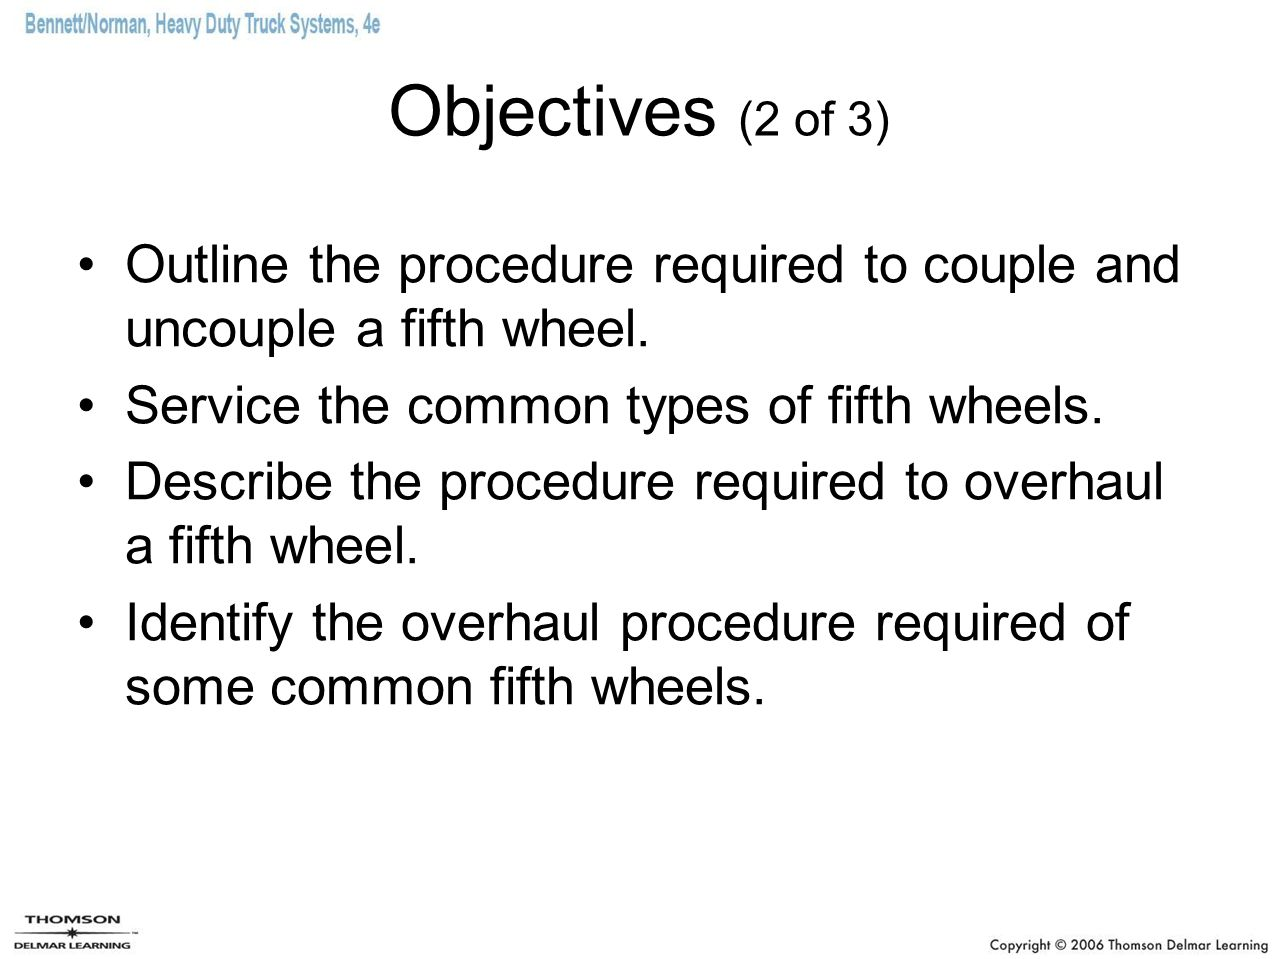 Objectives (2 of 3) Outline the procedure required to couple and uncouple a fifth wheel. Service the common types of fifth wheels. Describe the proced